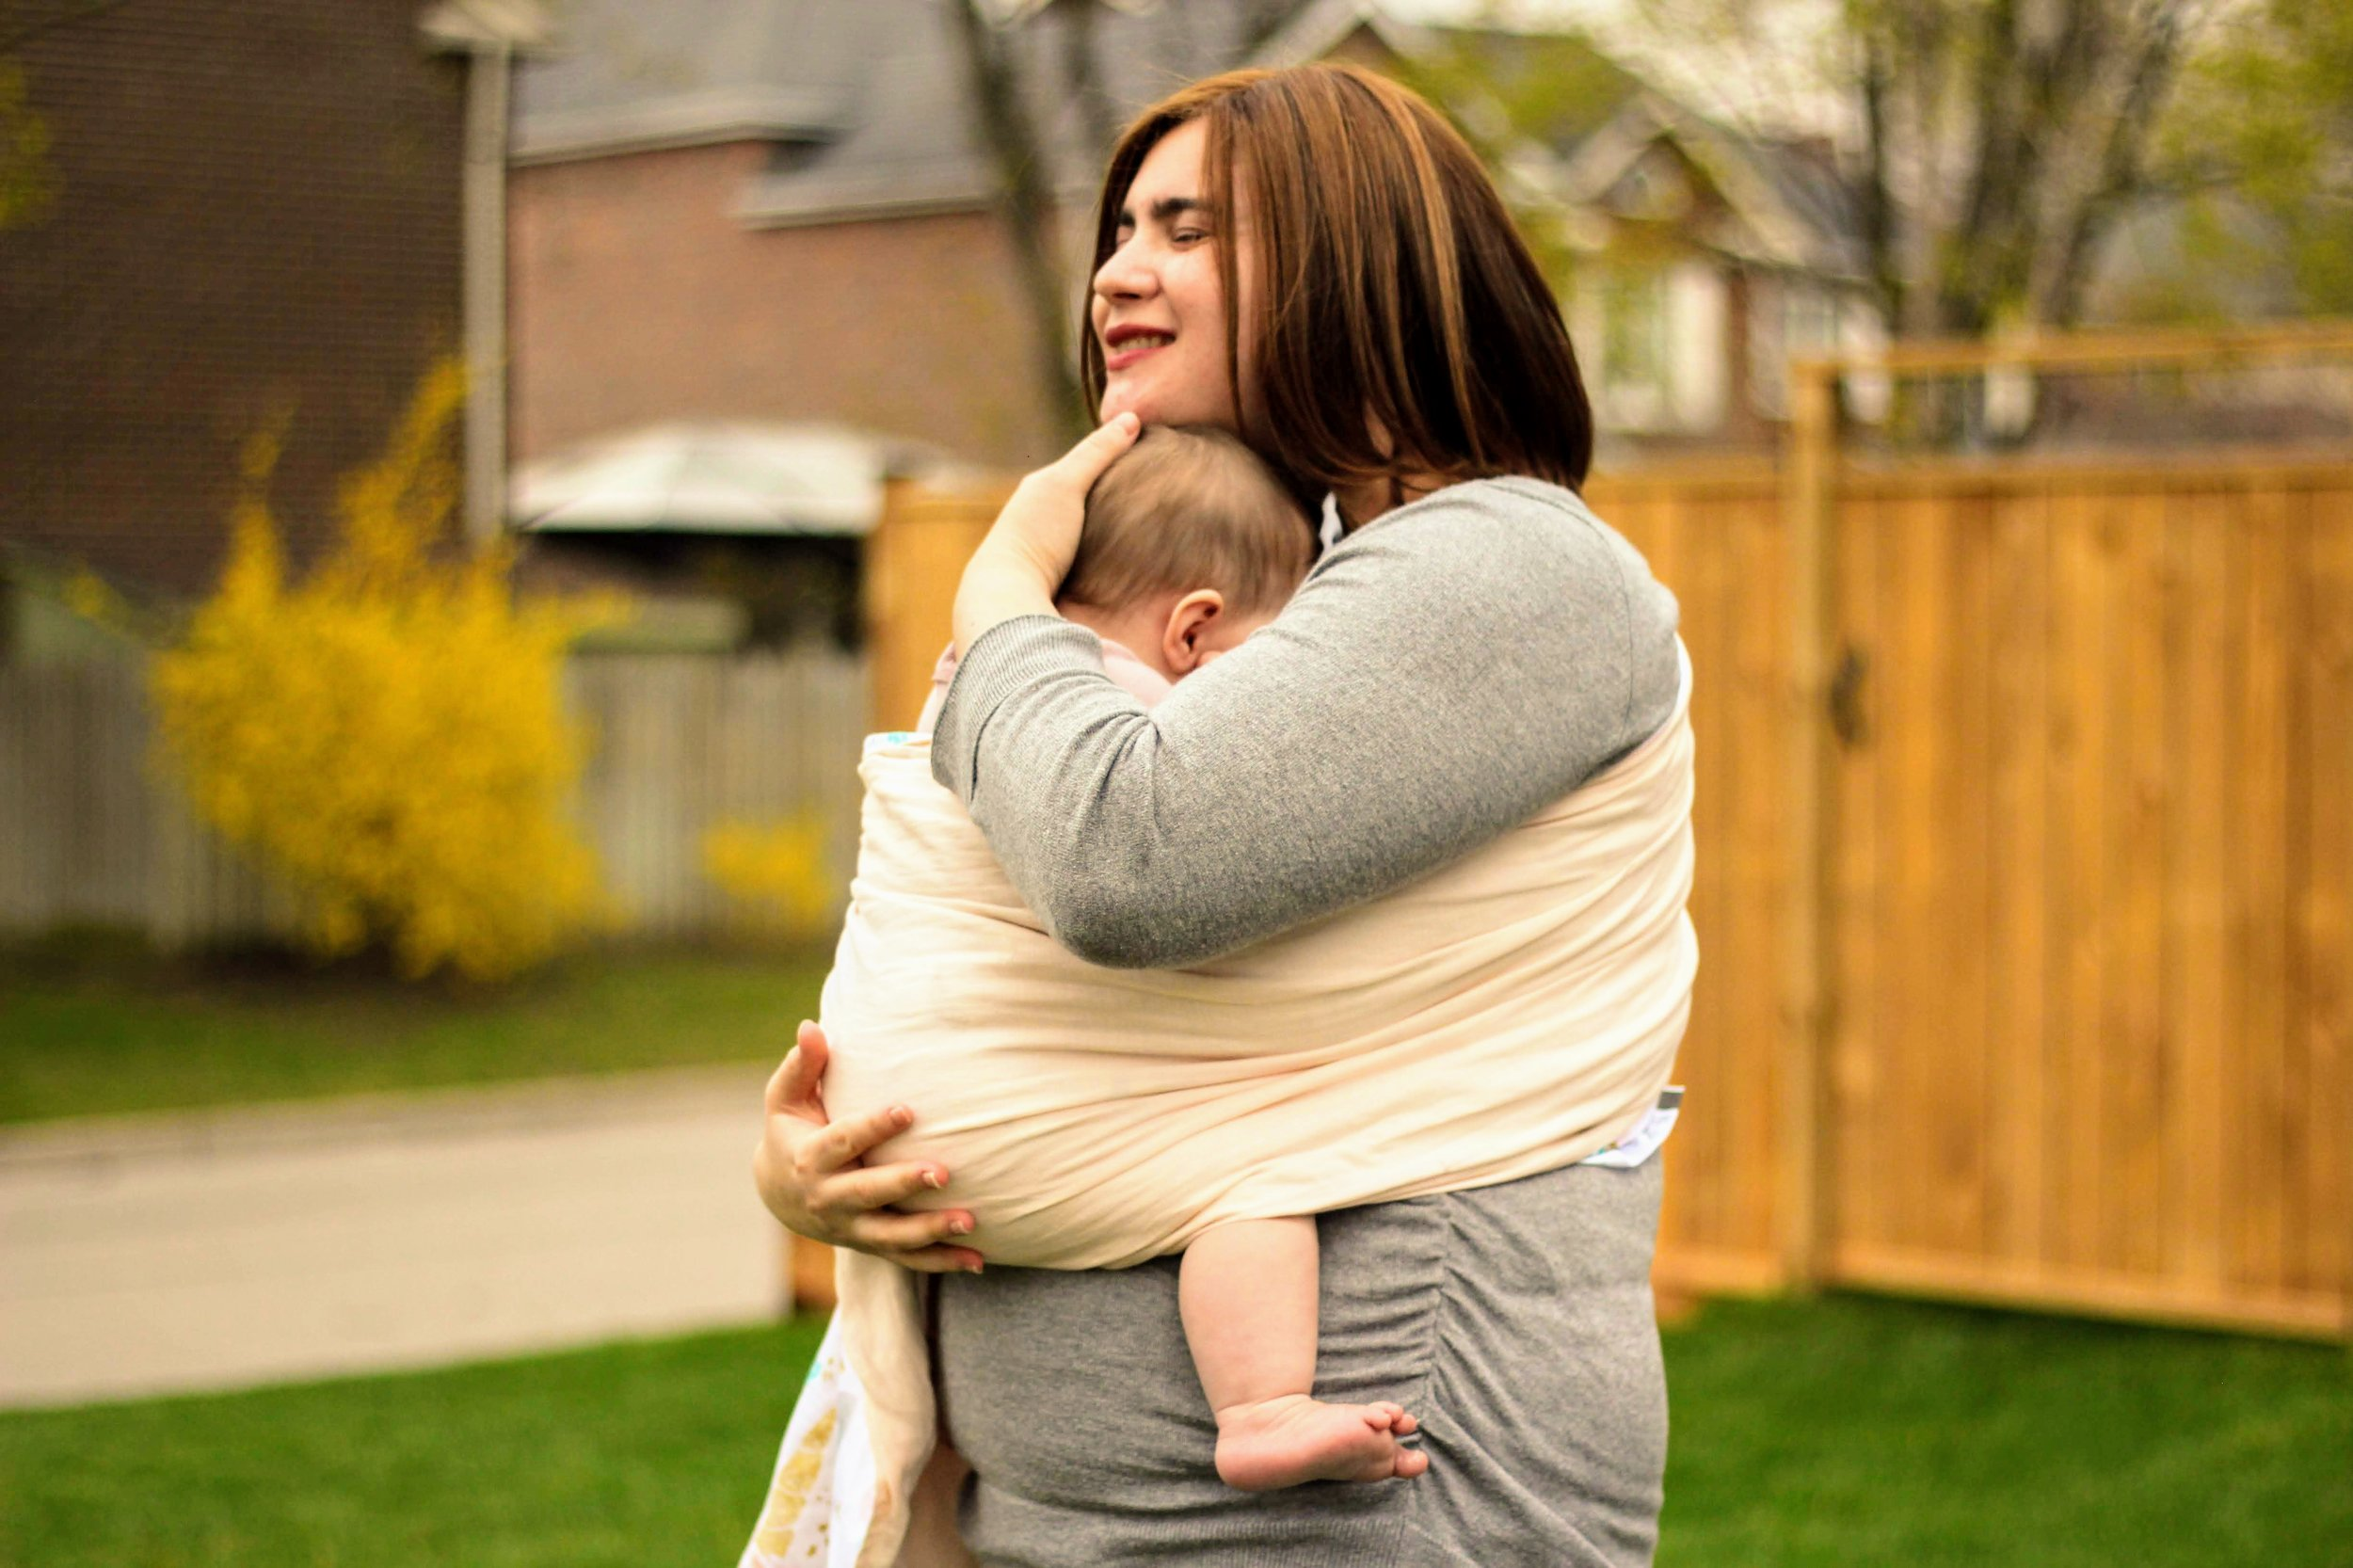 Babywearing can increase bonding.